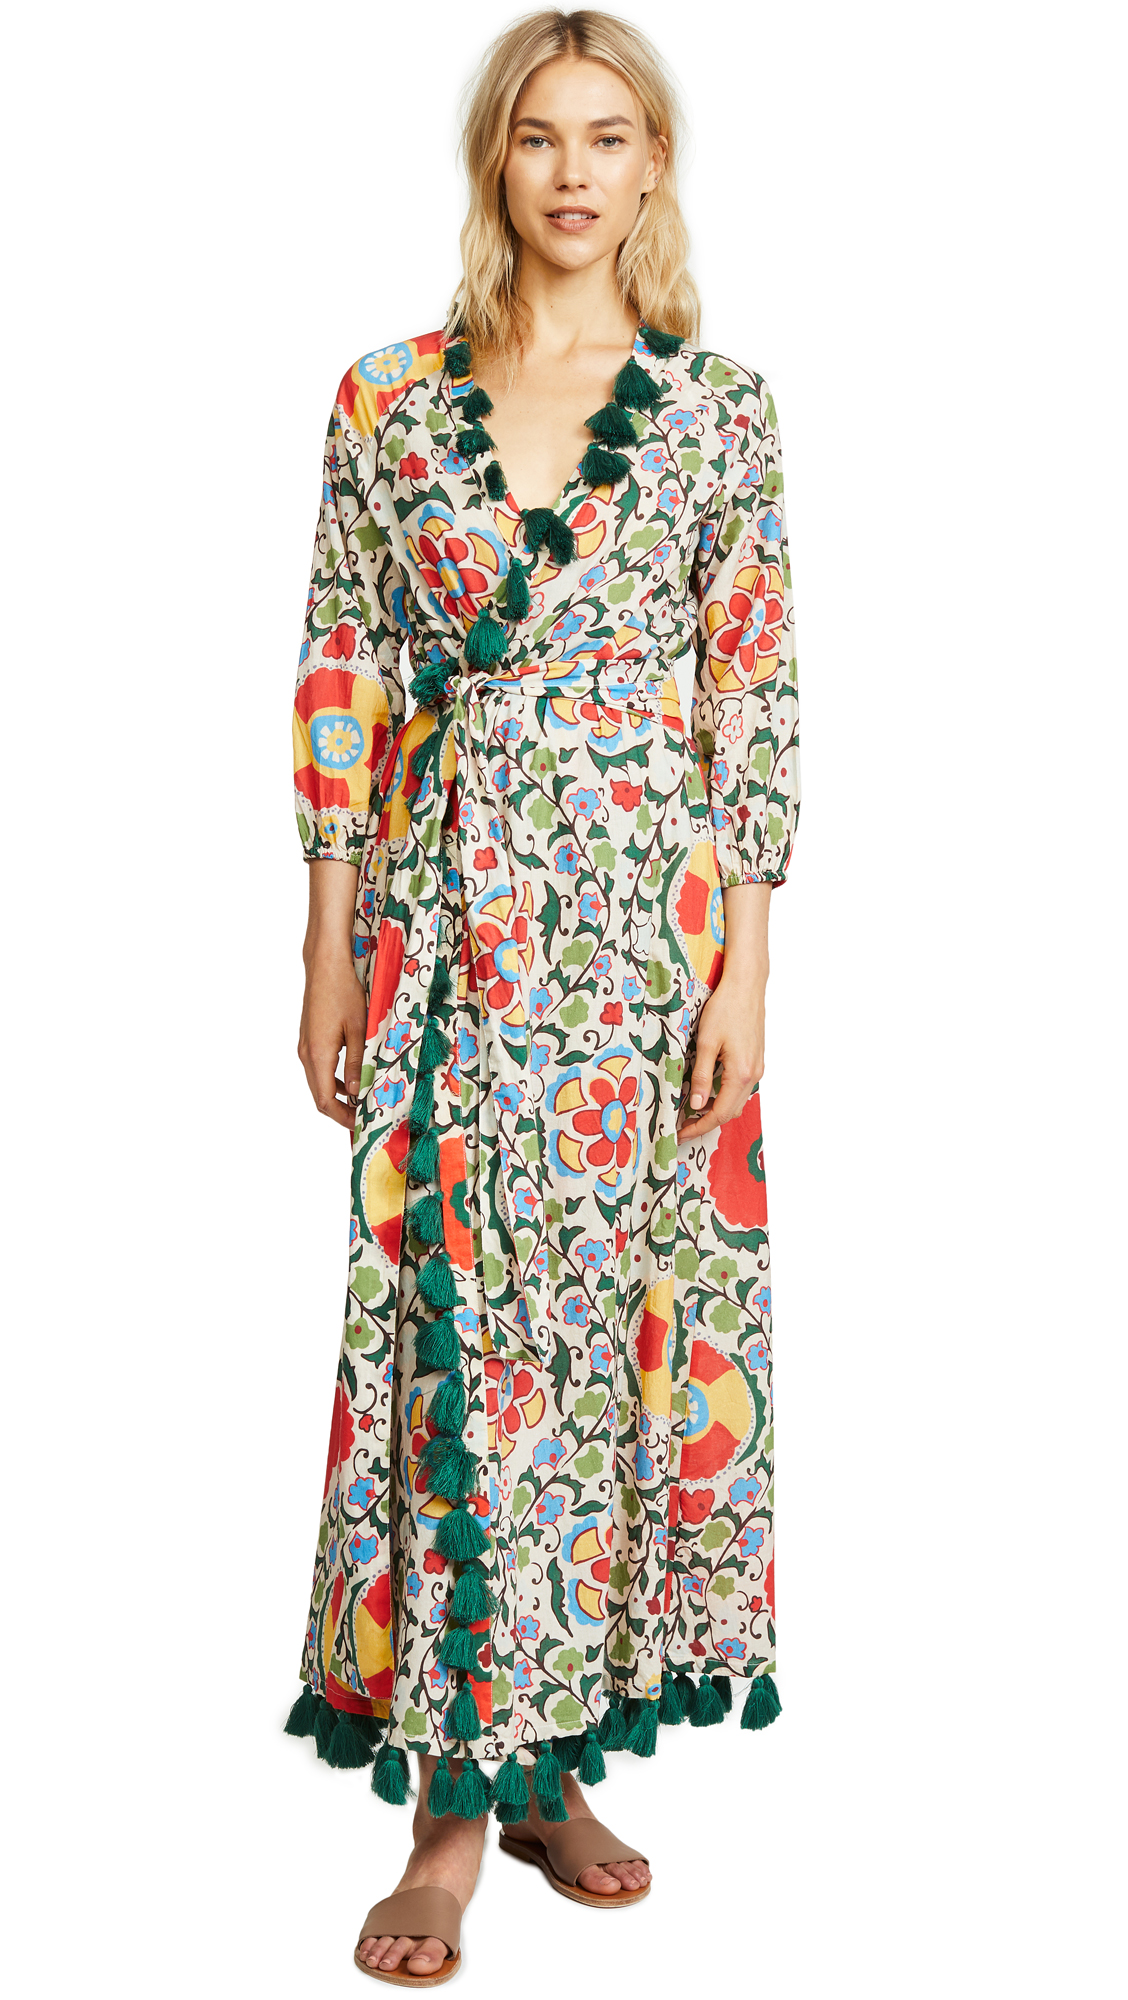 RHODE RESORT Lena Tasseled Printed Cotton-Voile Maxi Dress in White Multiflower